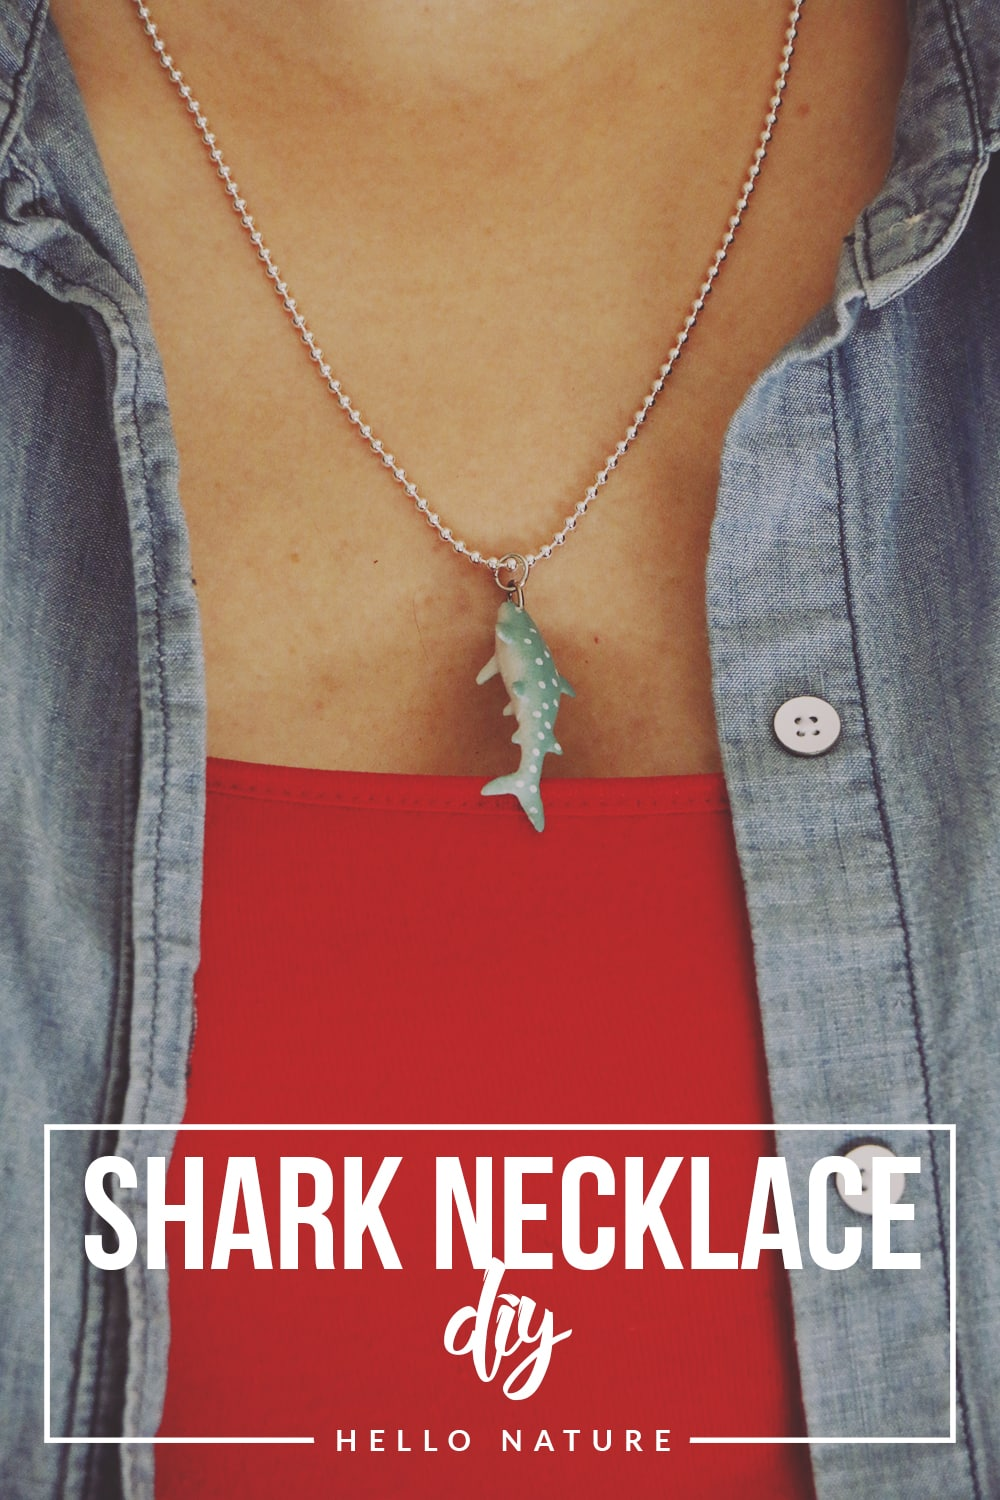 Celebrate shark week and shark awareness day with this fun and easy shark necklace DIY! You'll be ready to share your love for the ocean in no time!